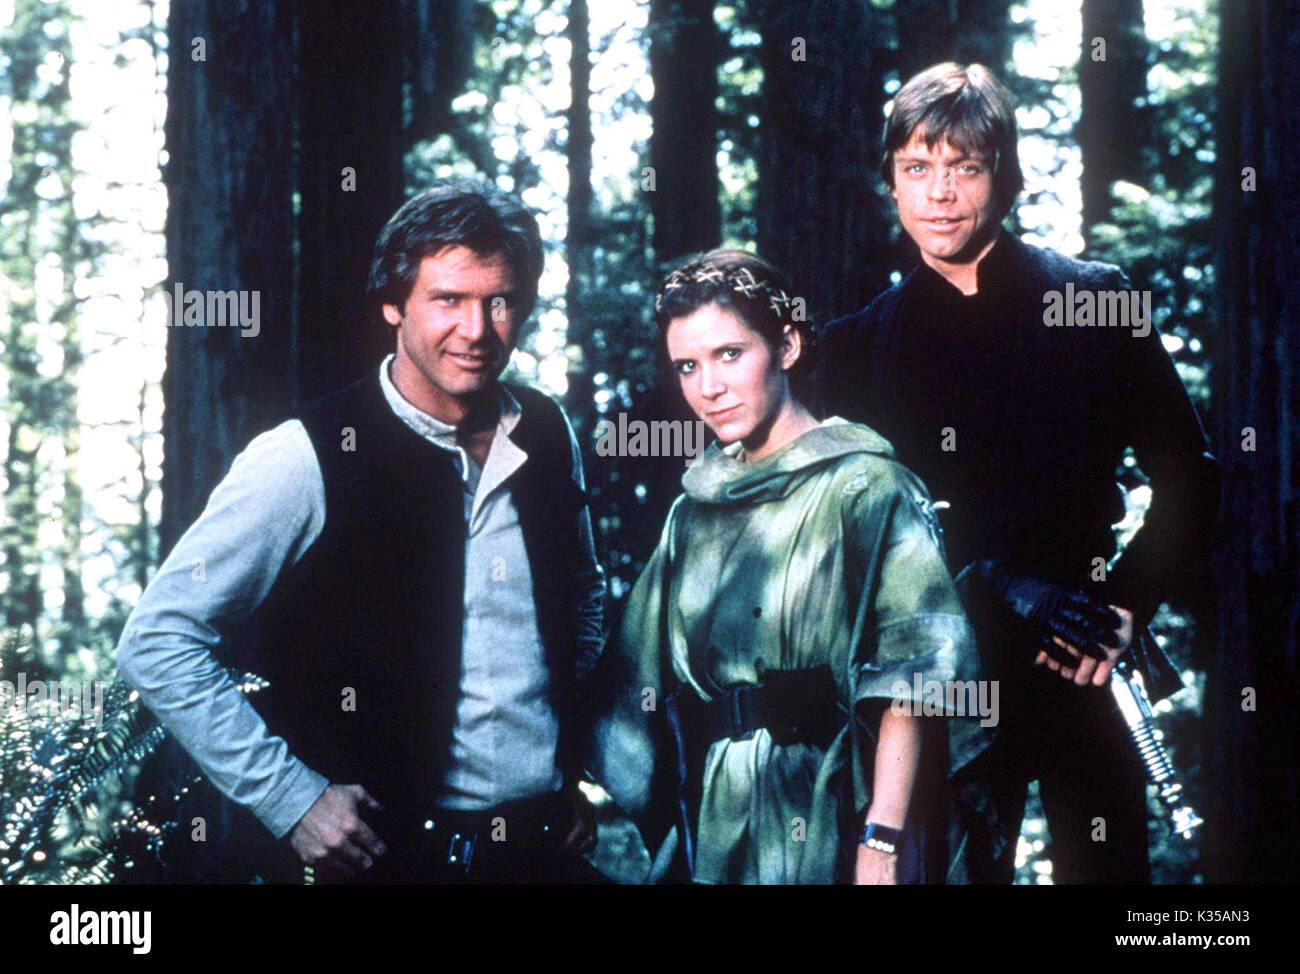 Photo Must Be Credited ©Supplied by Alpha 070000 (1983) Harrison Ford as Hans Solo, Carrie Fisher as Princess Leia and Mark Hamill as Luke Skywalker in Star Wars The Empire Strikes Back movie - Stock Image